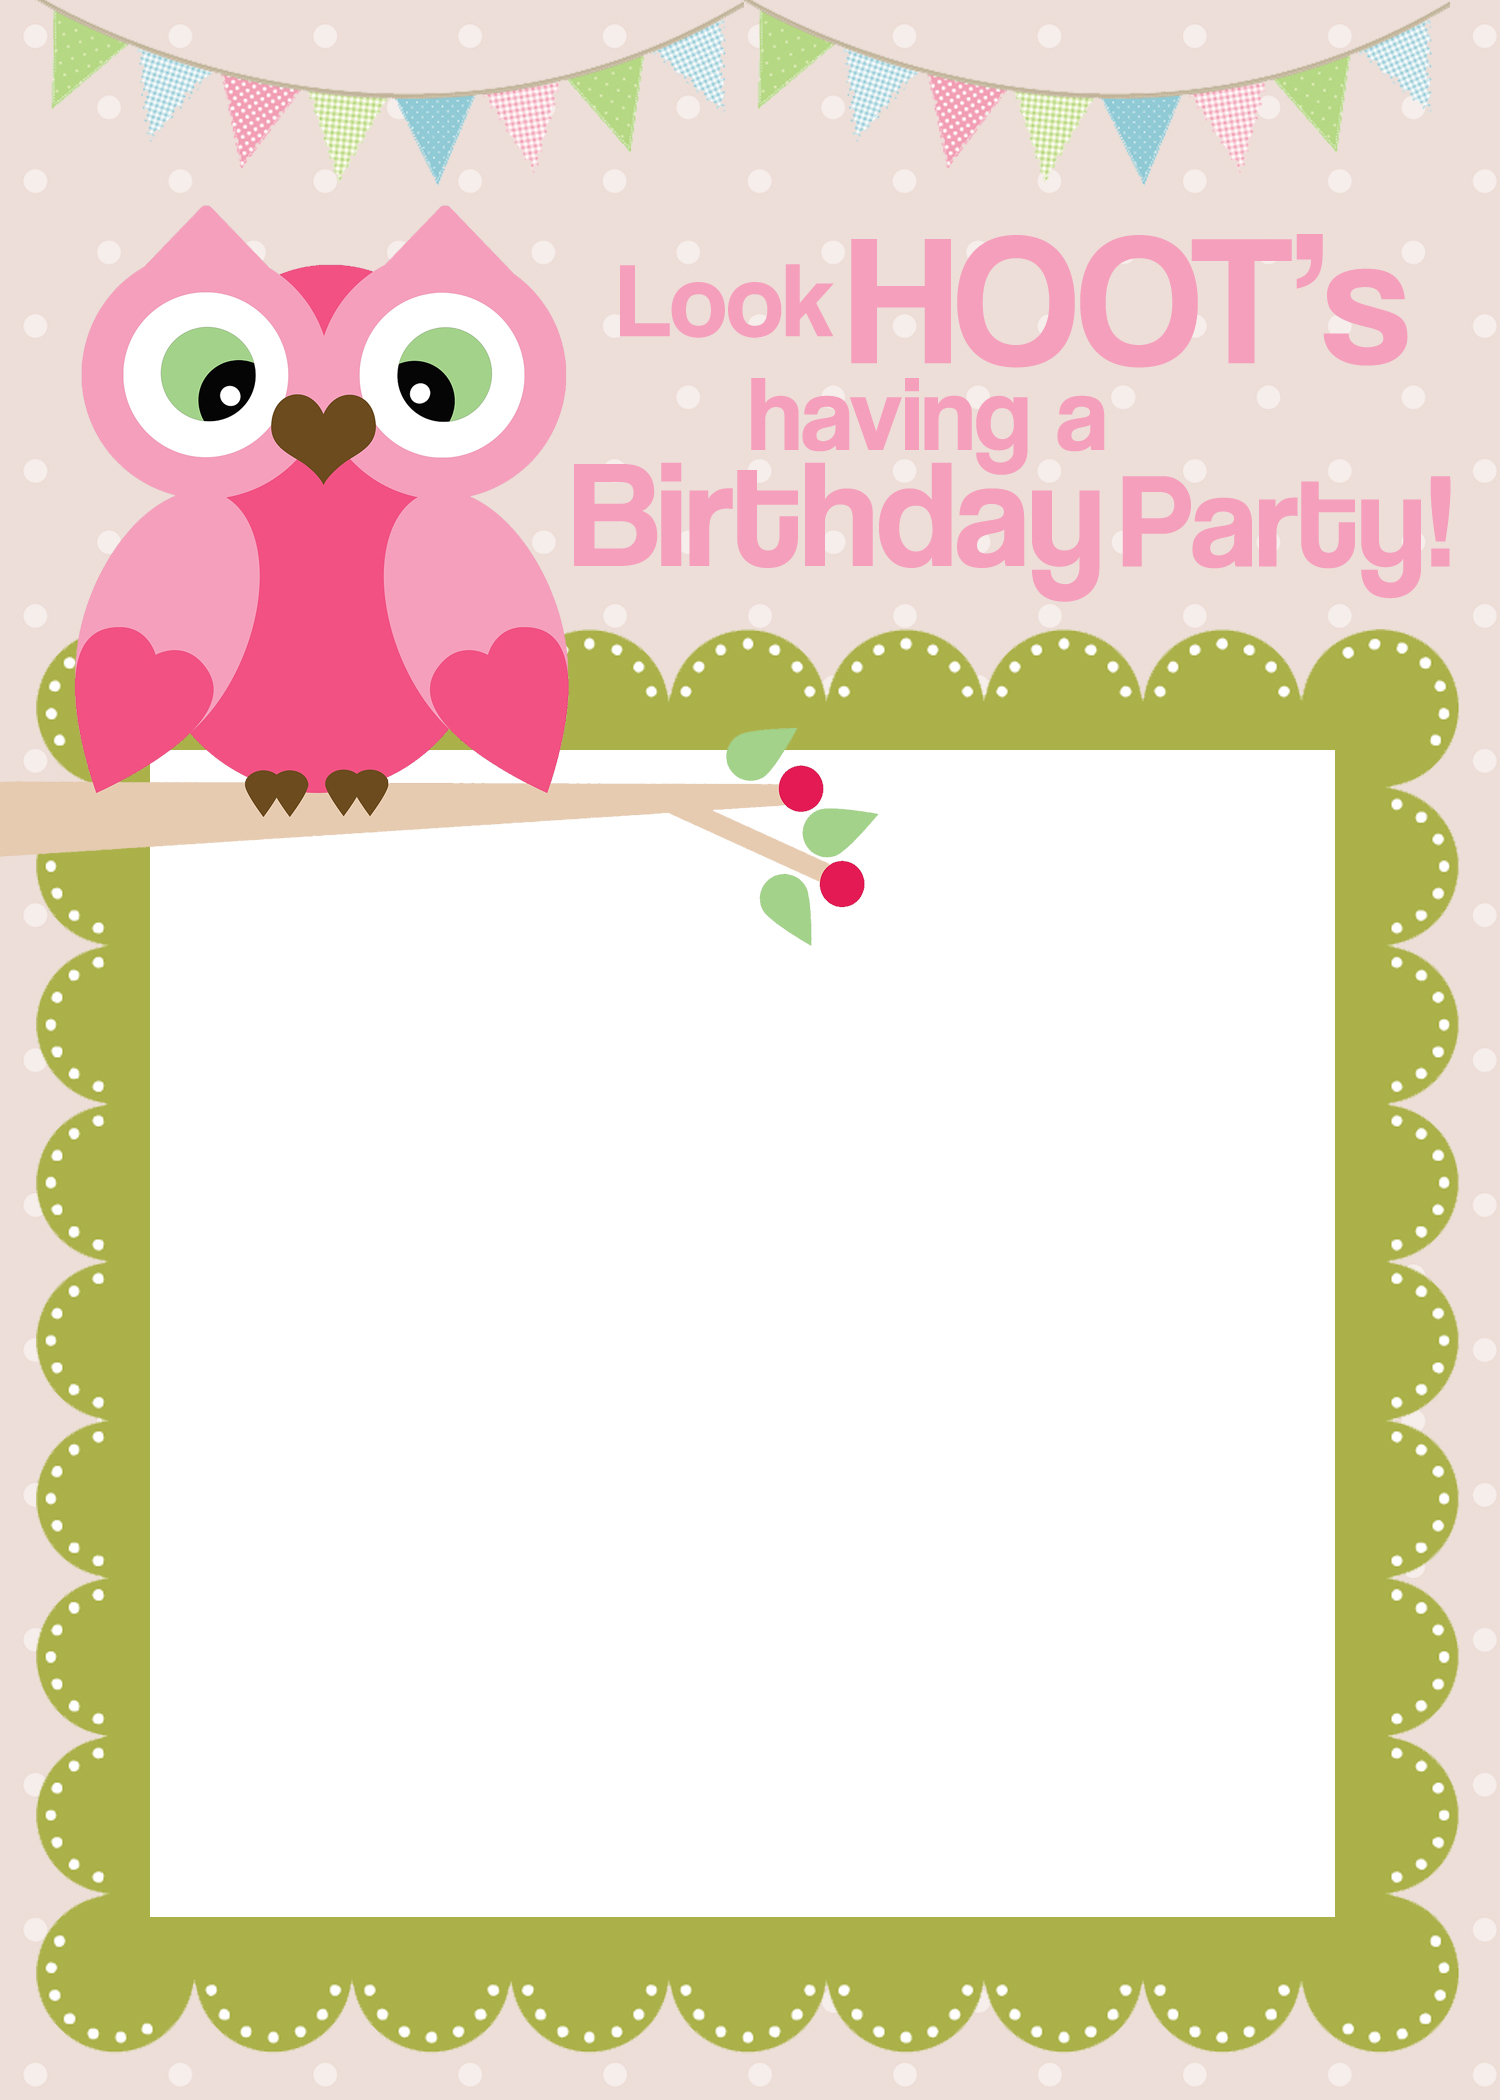 free birthday invitation card maker with photo ; Best-Birthday-Invitation-Card-Maker-Free-Printable-44-for-Your-HD-Image-Picture-with-Birthday-Invitation-Card-Maker-Free-Printable